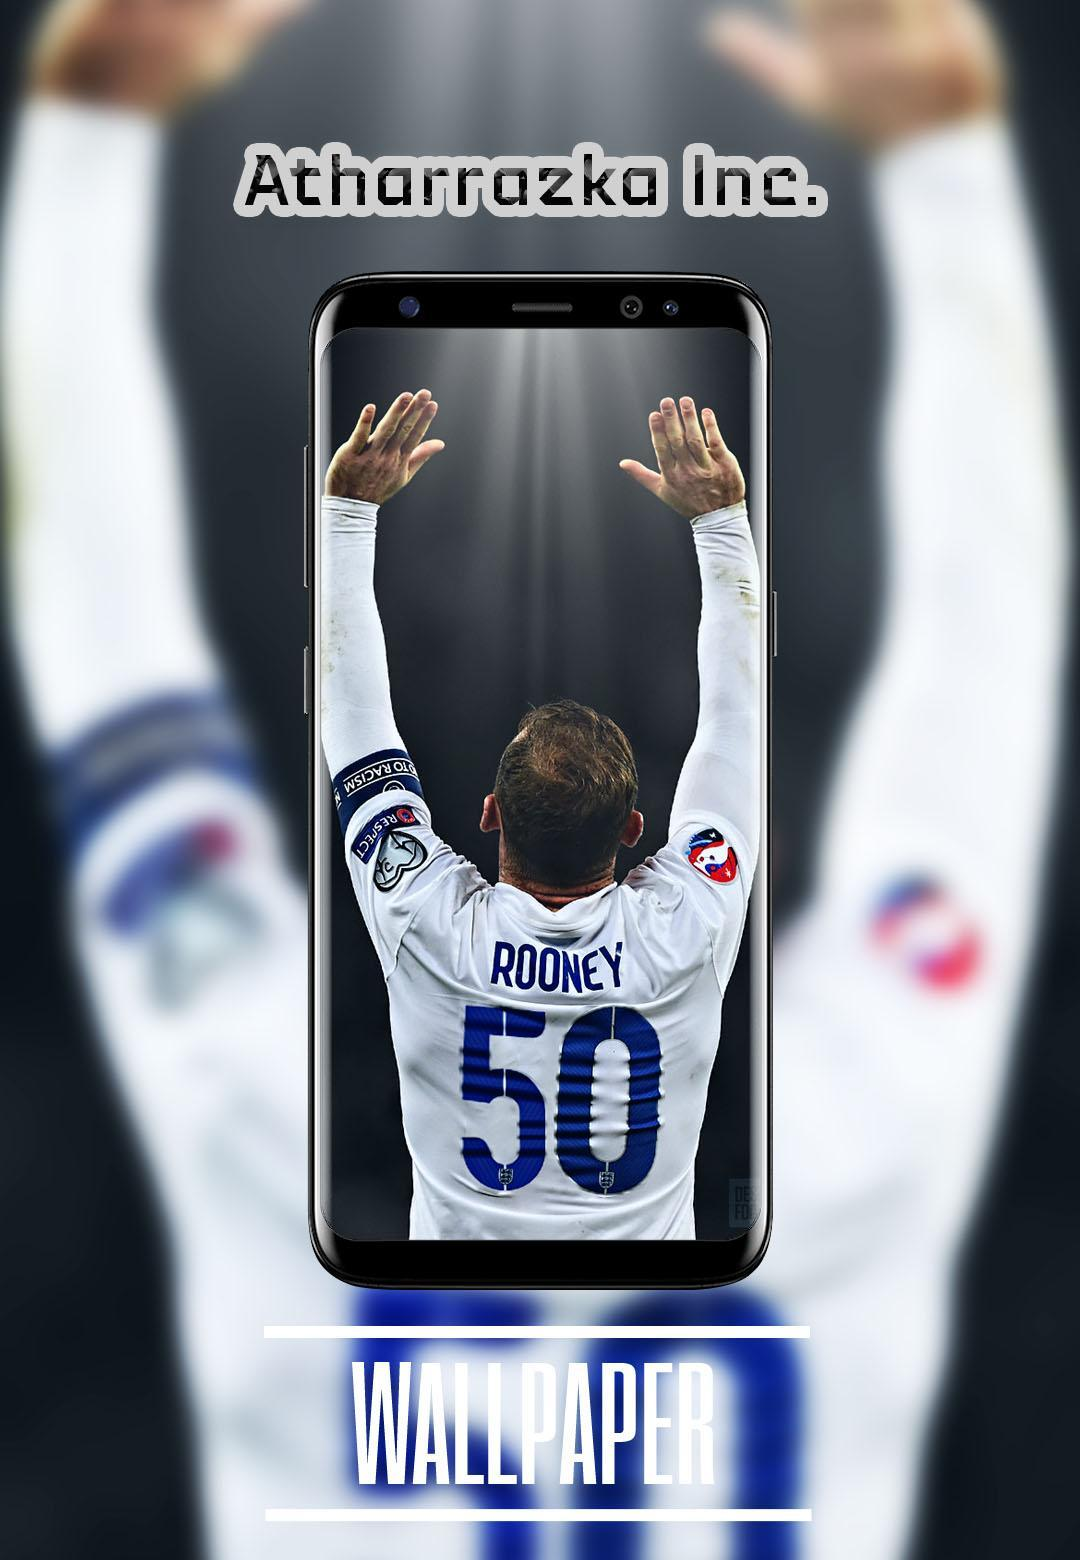 Wayne Rooney Wallpapers Hd For Android Apk Download